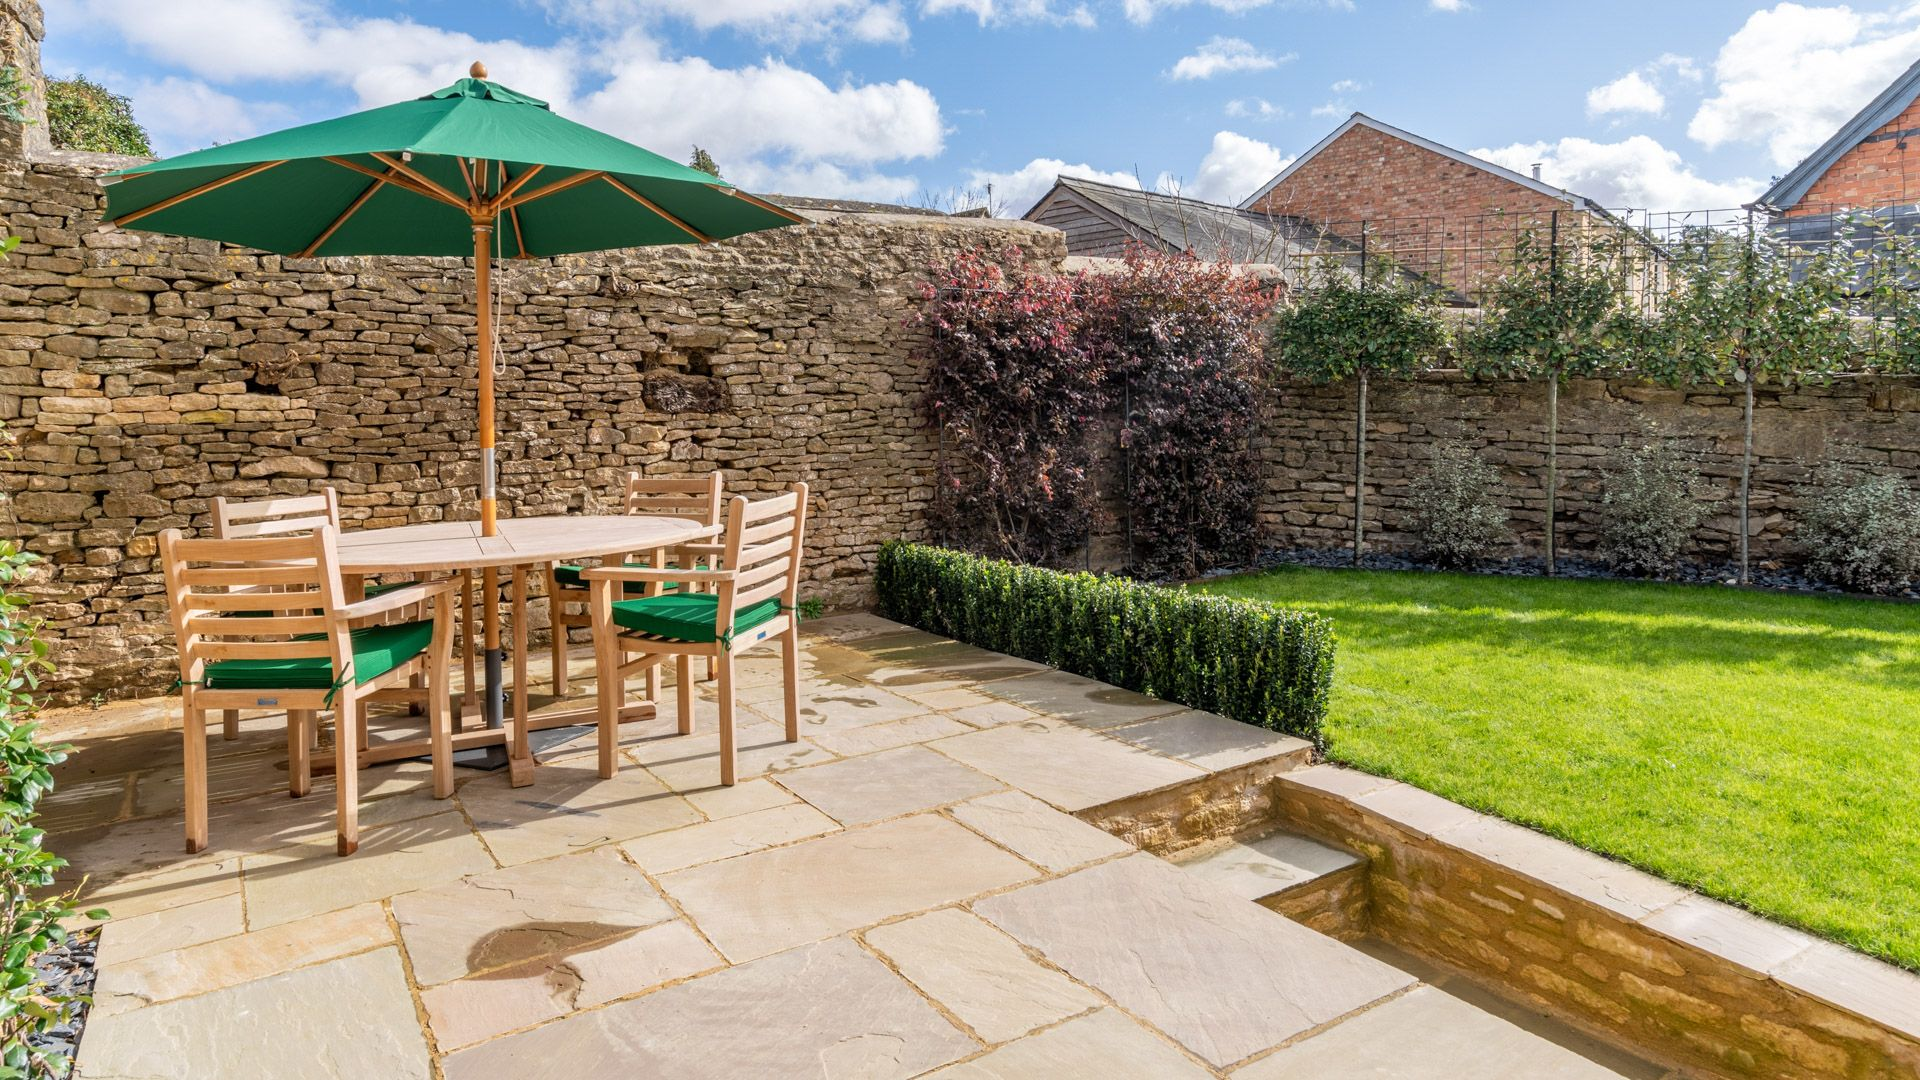 Patio with table and chairs, Tachbrook, Bolthole Retreats